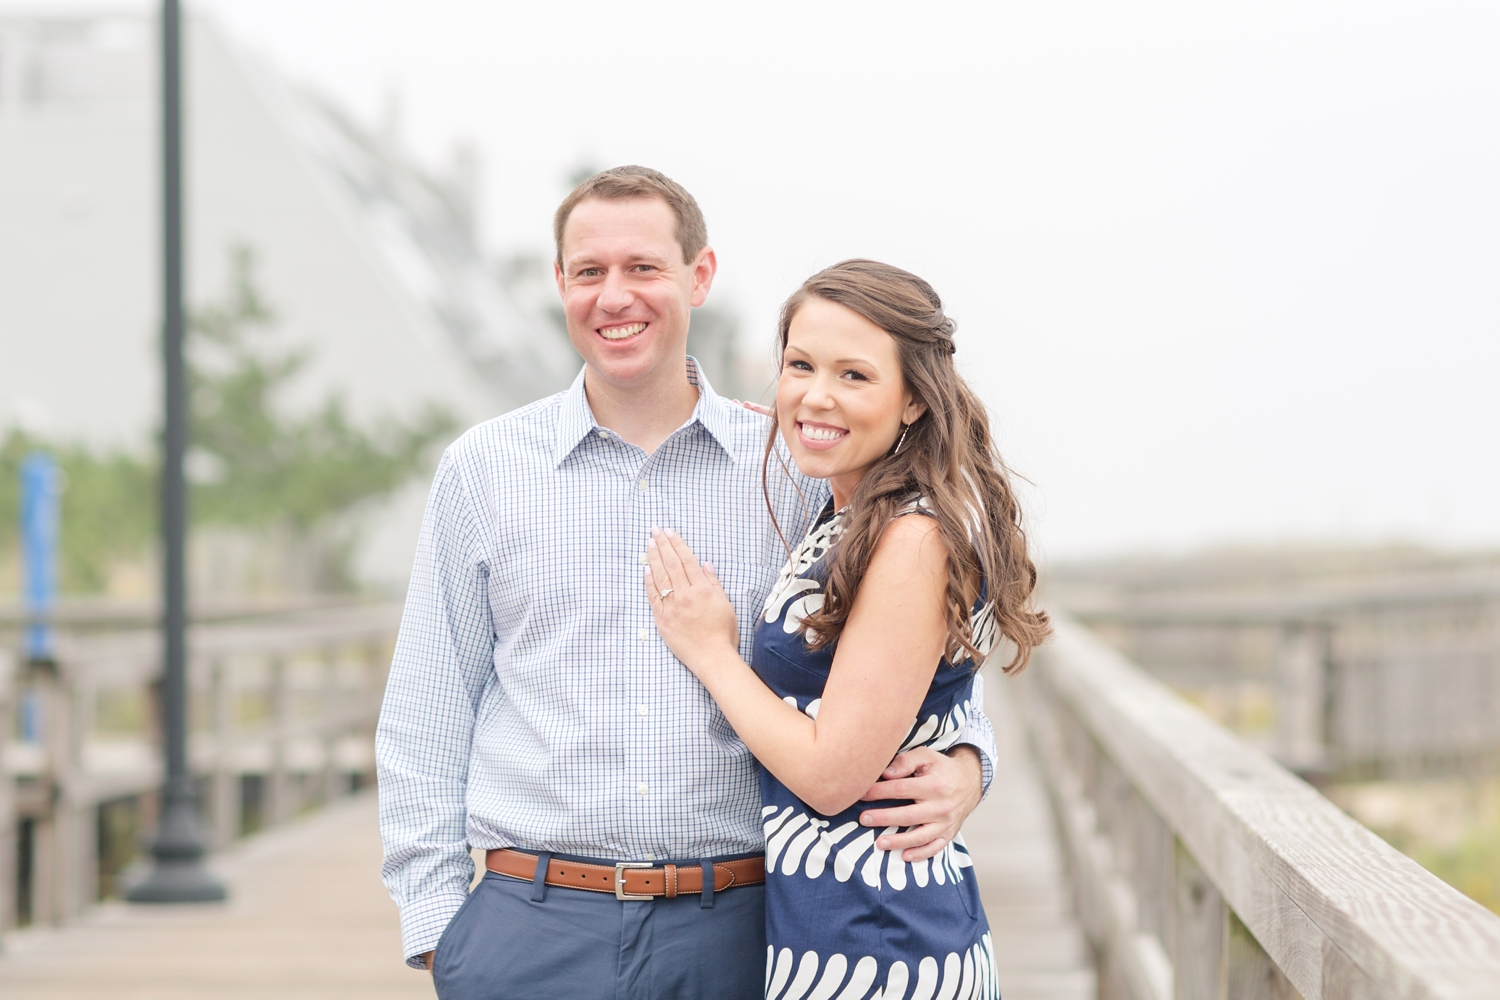 Susan Sturgeon & Stephen George Engagement-1_bethany-beach-engagement-shoot-delaware-maryland-photographer-anna-grace-photography-photo.jpg